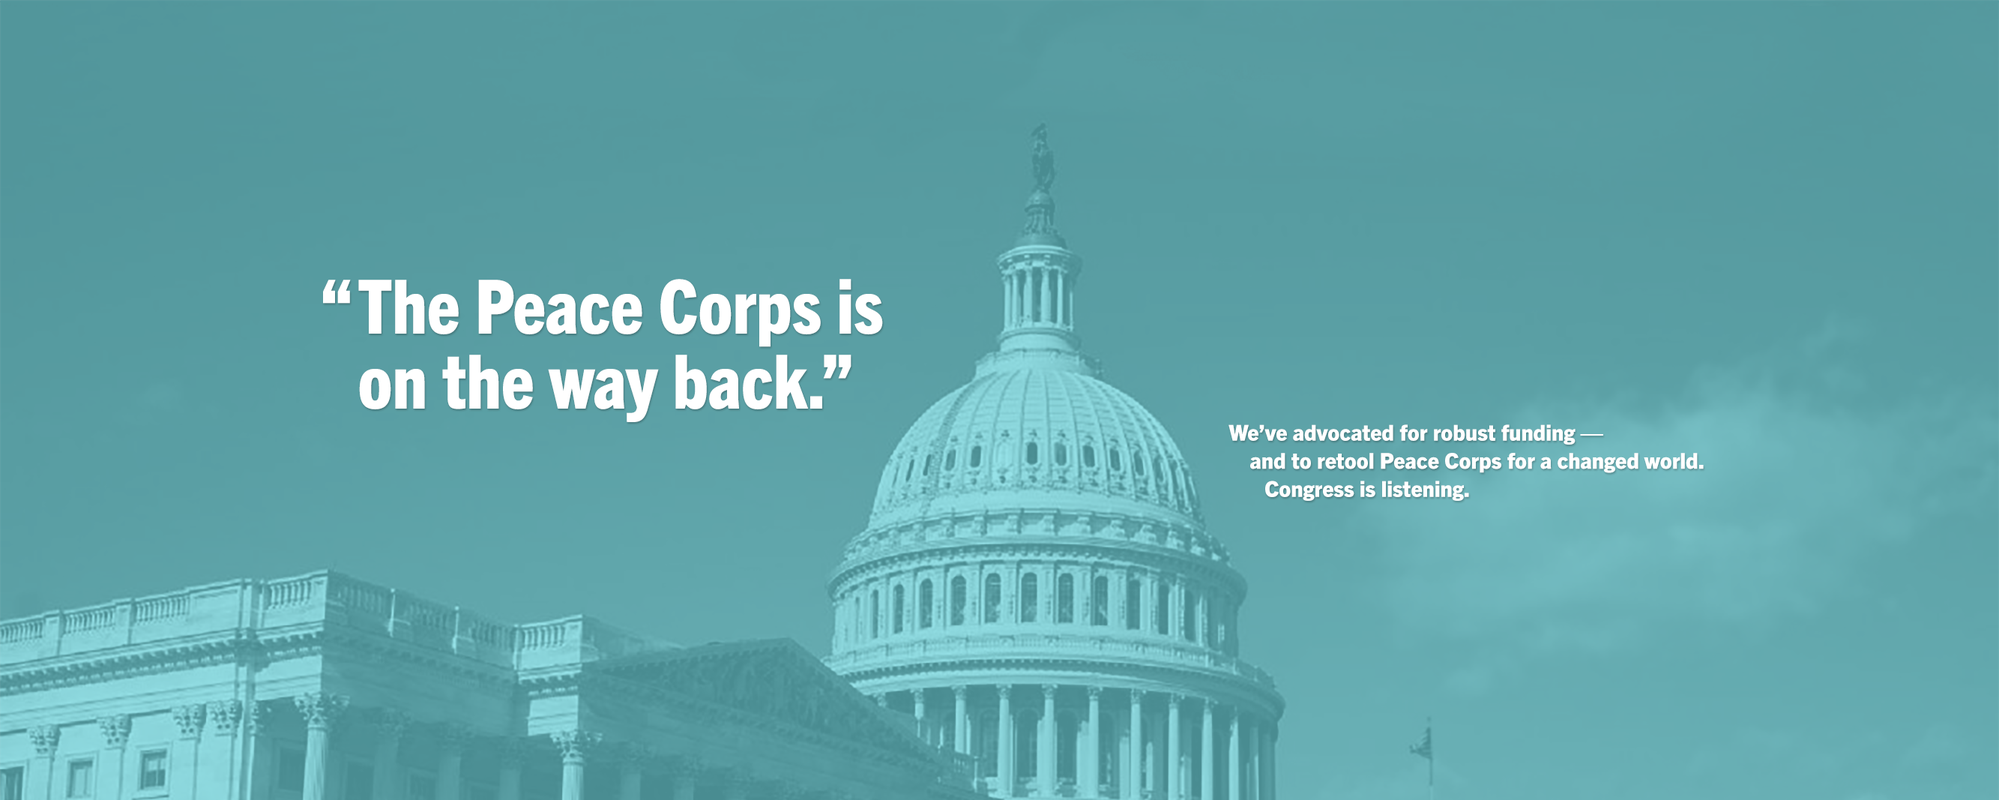 The Peace Corps is on the way back.